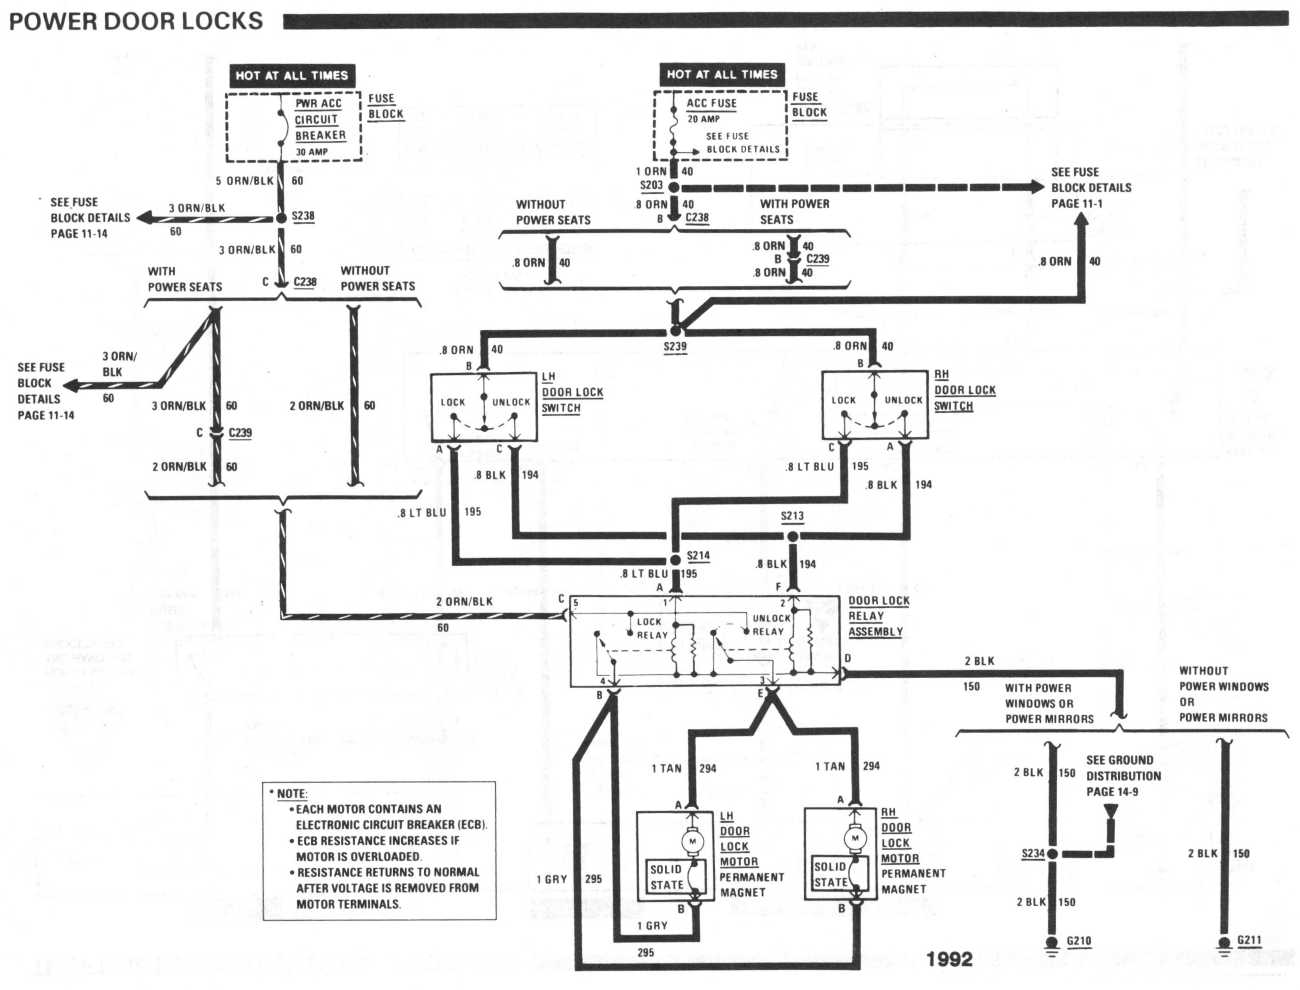 1989 chevy 1500 door lock wiring diagram